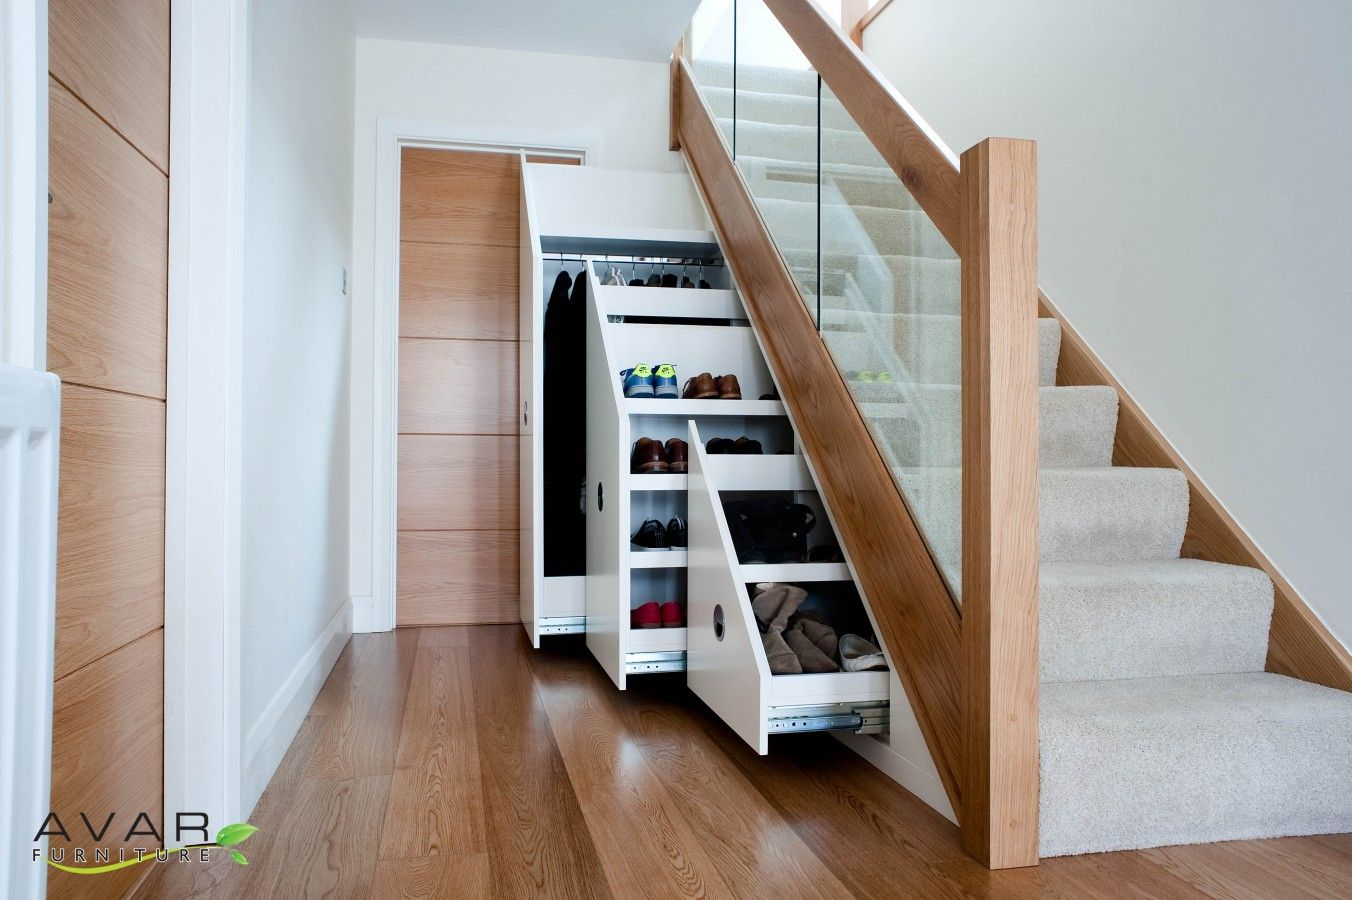 ƸӜƷ under stairs storage ideas gallery 24 | north london, uk